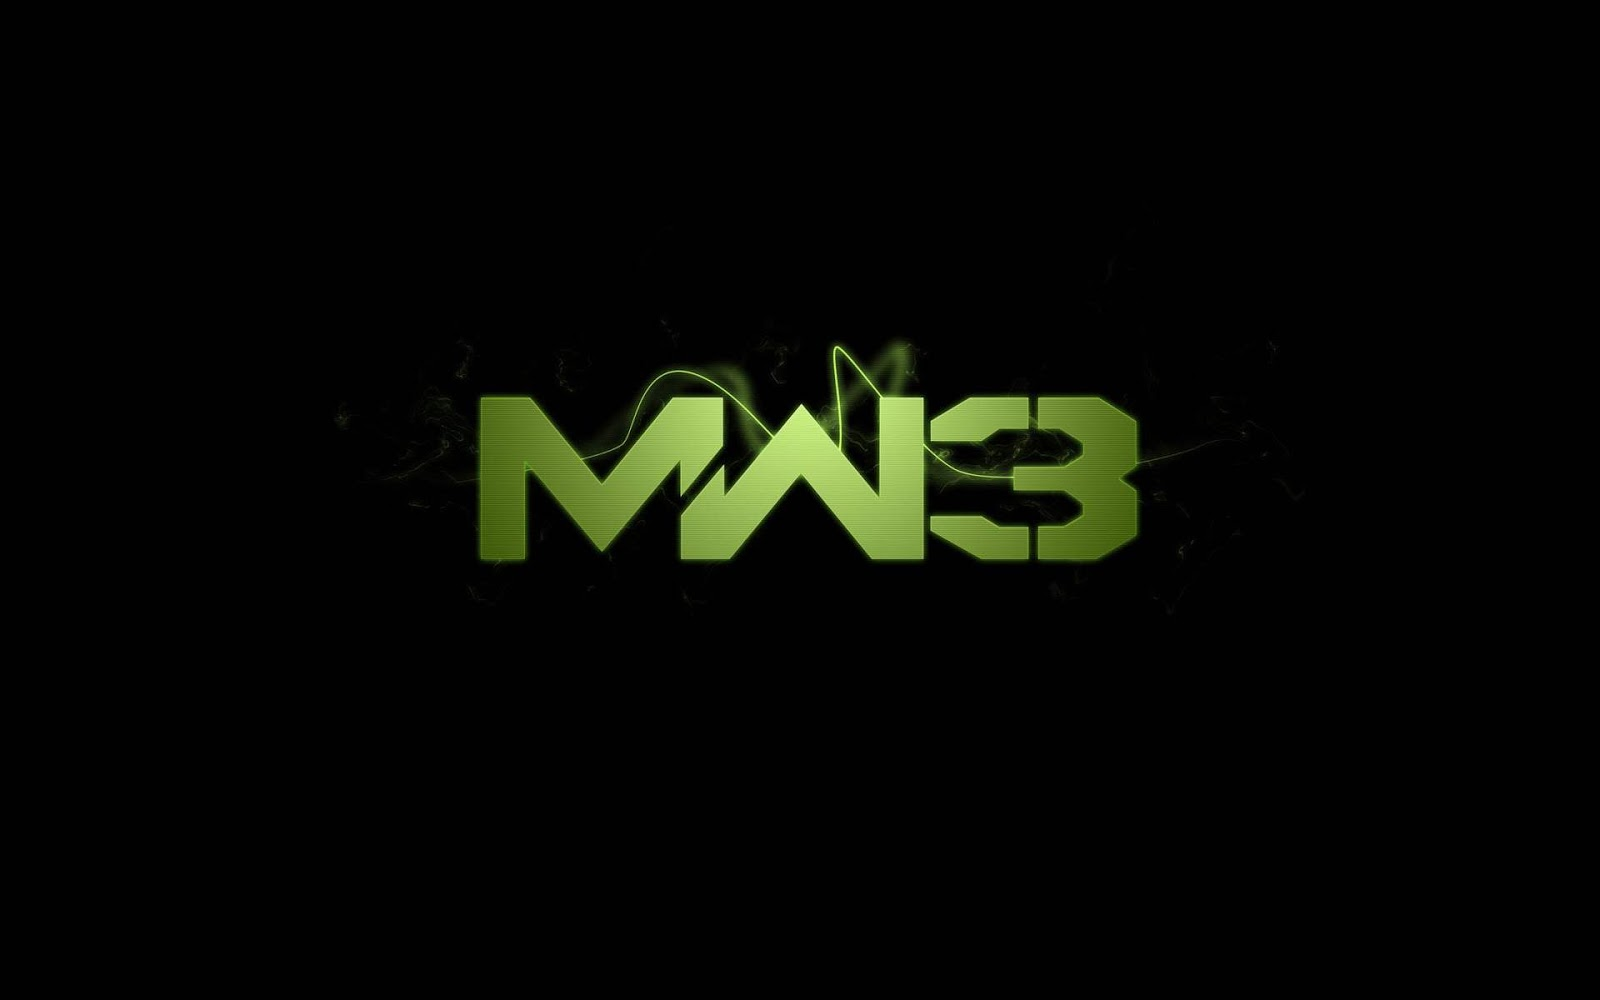 http://2.bp.blogspot.com/-4Xpi62nDVqM/UNSrEM5kHOI/AAAAAAAAAPQ/YcF1y5S2Wv4/s1600/call+of+duty+modern+warfare+3+hd+wallpapers+(2).jpg